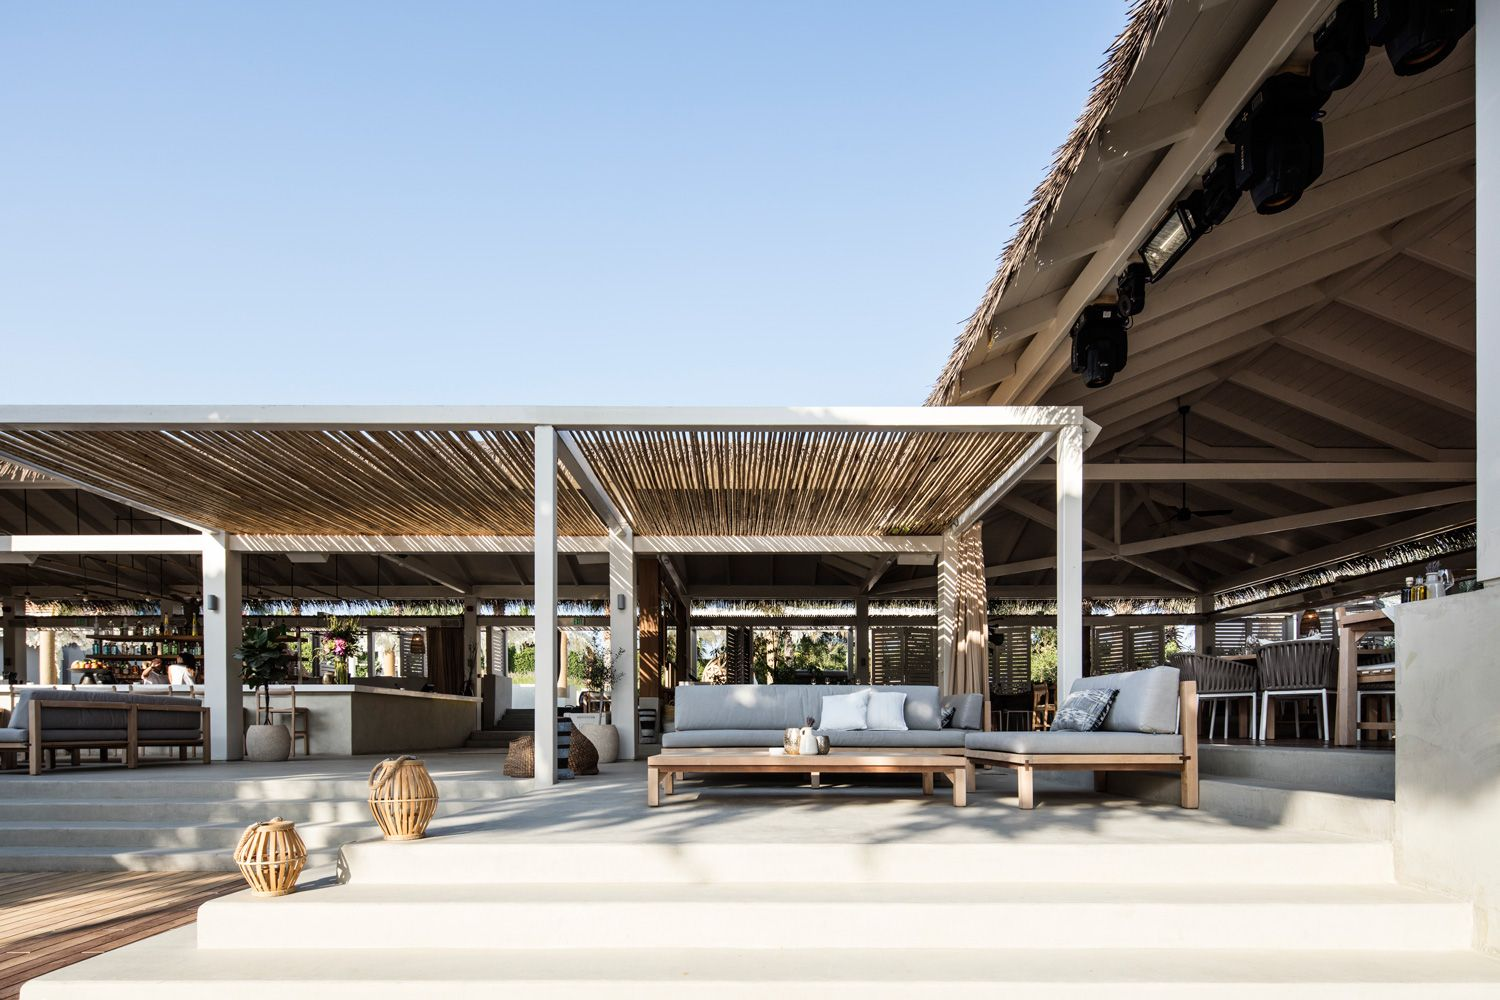 El Chiringuito Ibiza.Dubai feels naturally connected with the outdoors, yet manages to protect guests from the intense climate where most needed.